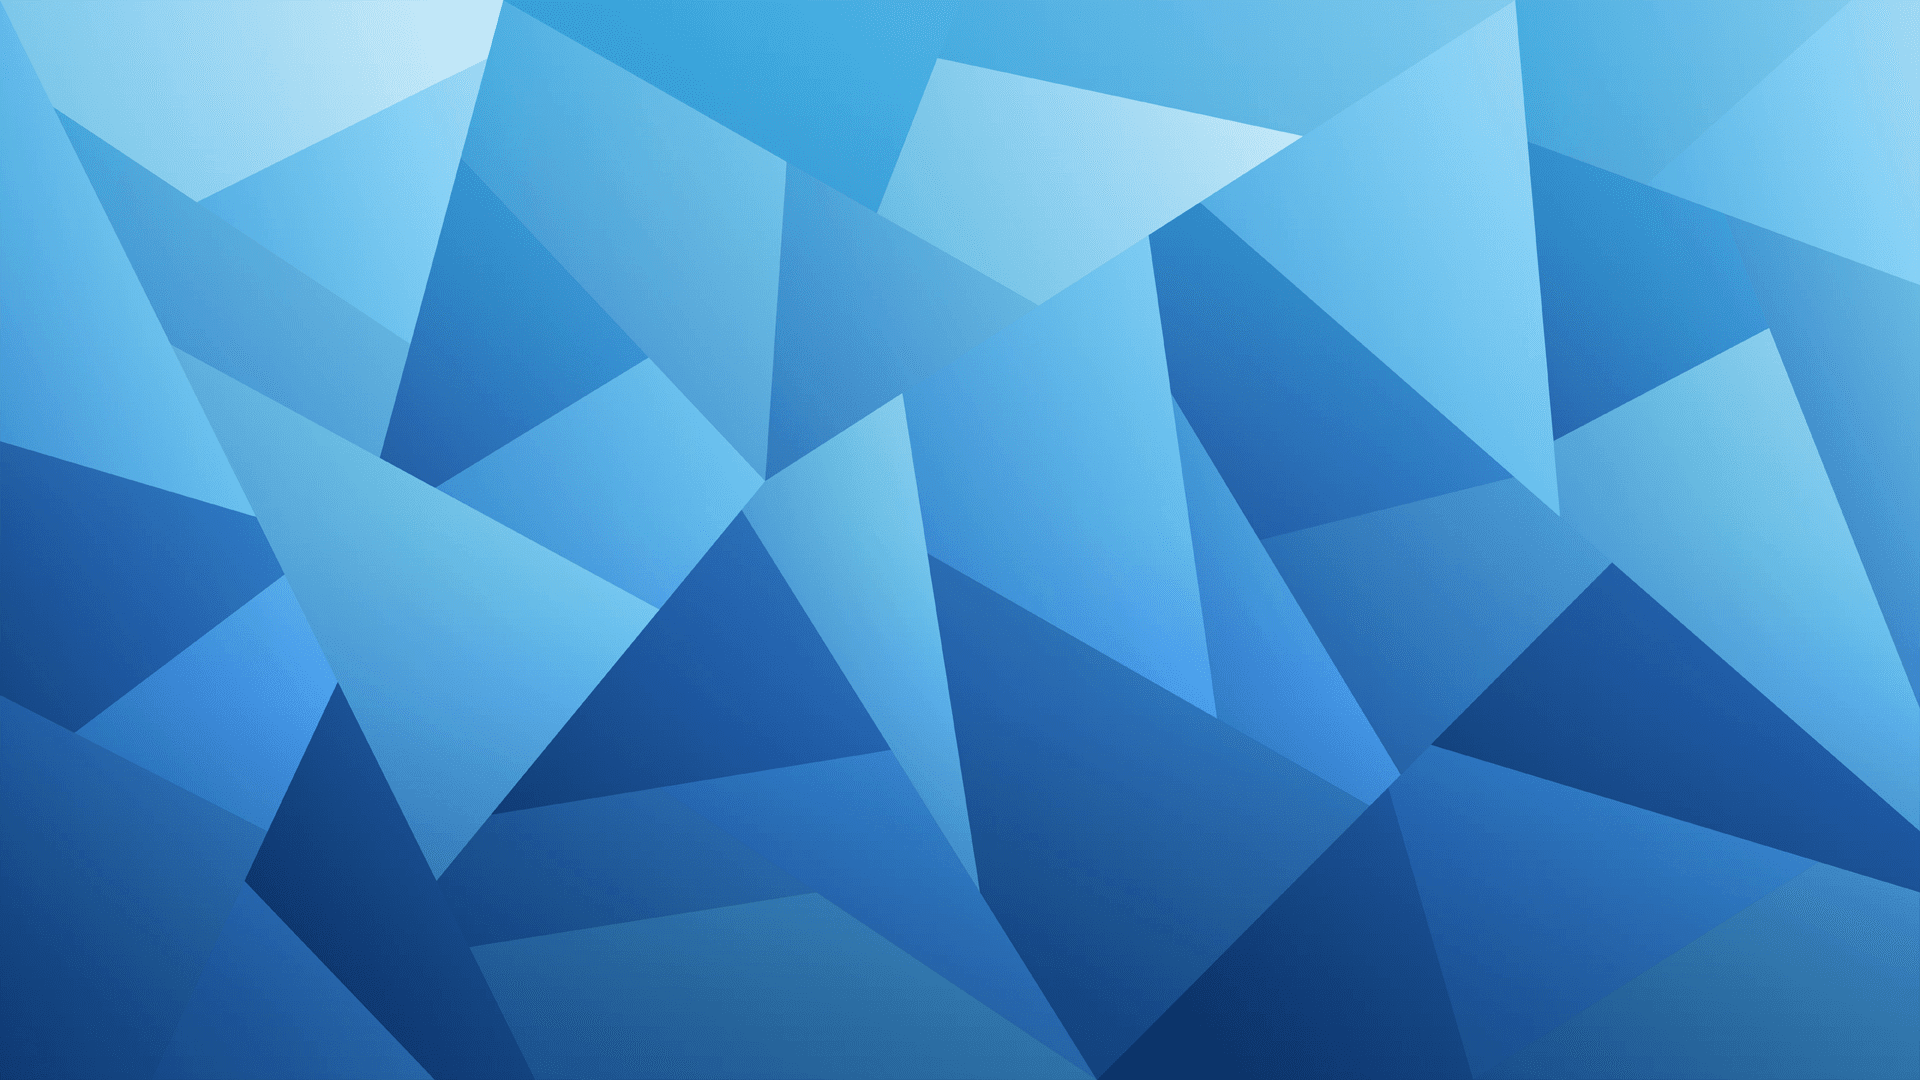 blue-triangle-wallpaper-5071-5313-hd-wallpapers | site search and